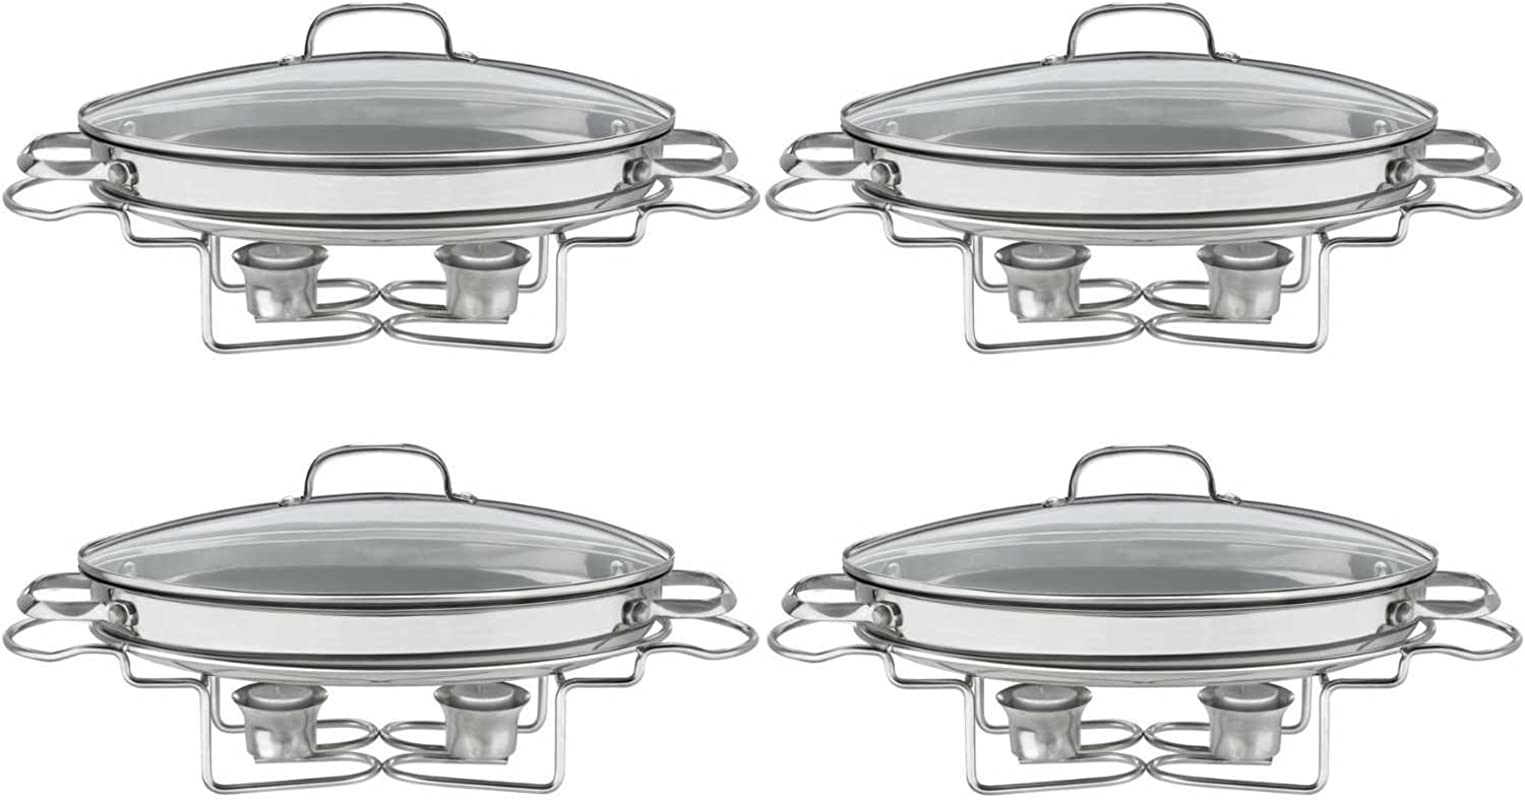 Cuisinart 7BSO 34 Stainless 13 1 2 Inch Oval Buffet Servers 4PK